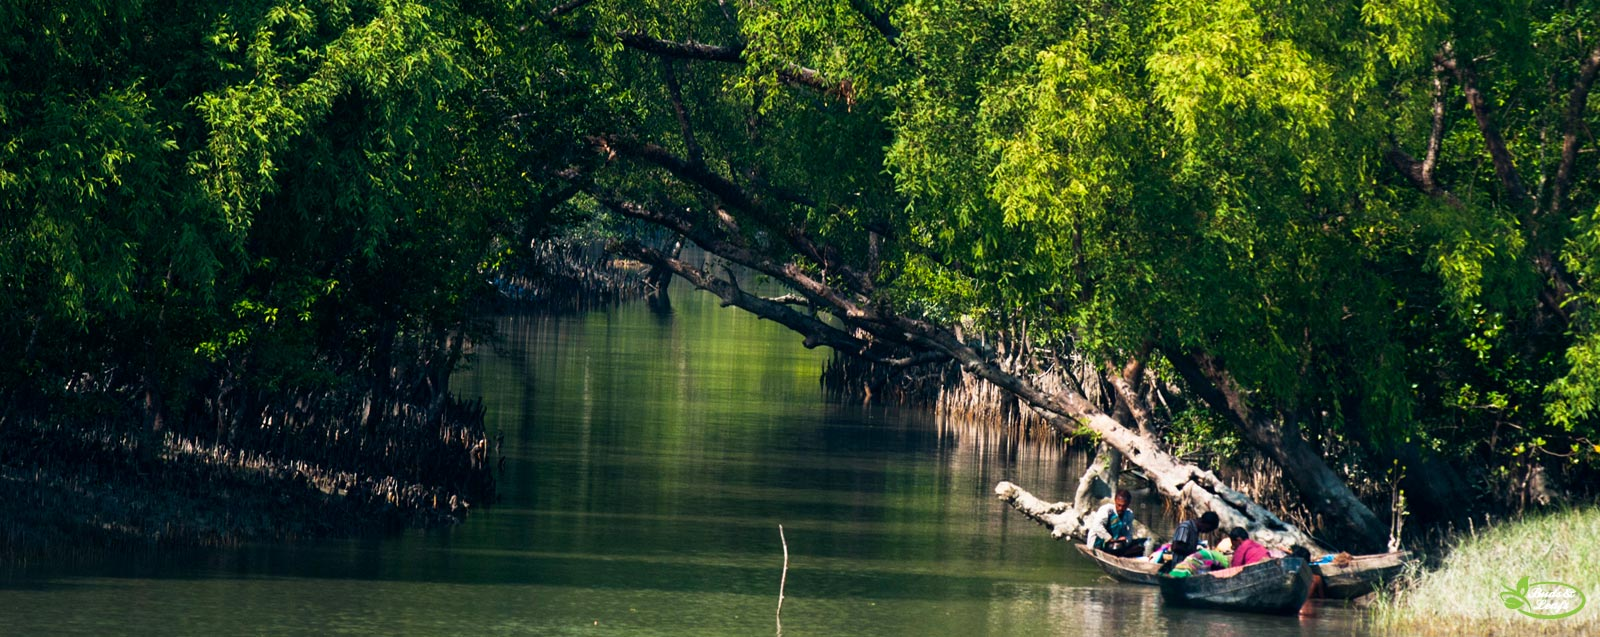 thesis on sundarbans Biodiversity and its conservation in the sundarban mangrove ecosystem (gopal and conservation in the sundarban sundarbans master in marine affairs thesis.